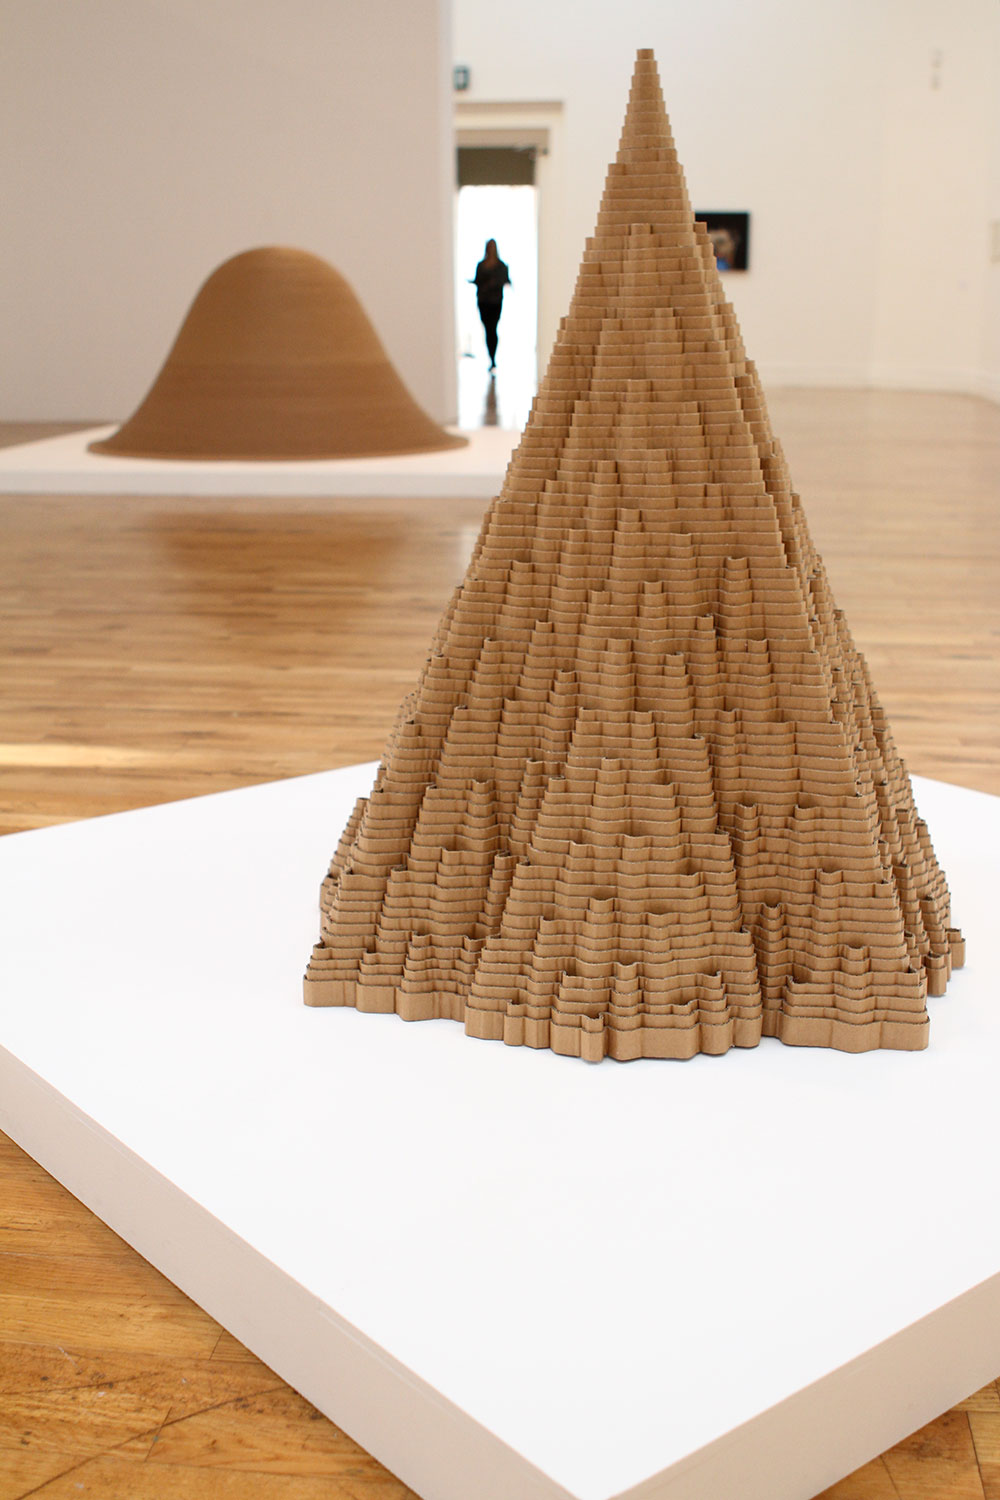 installation view of cardboard sculptures